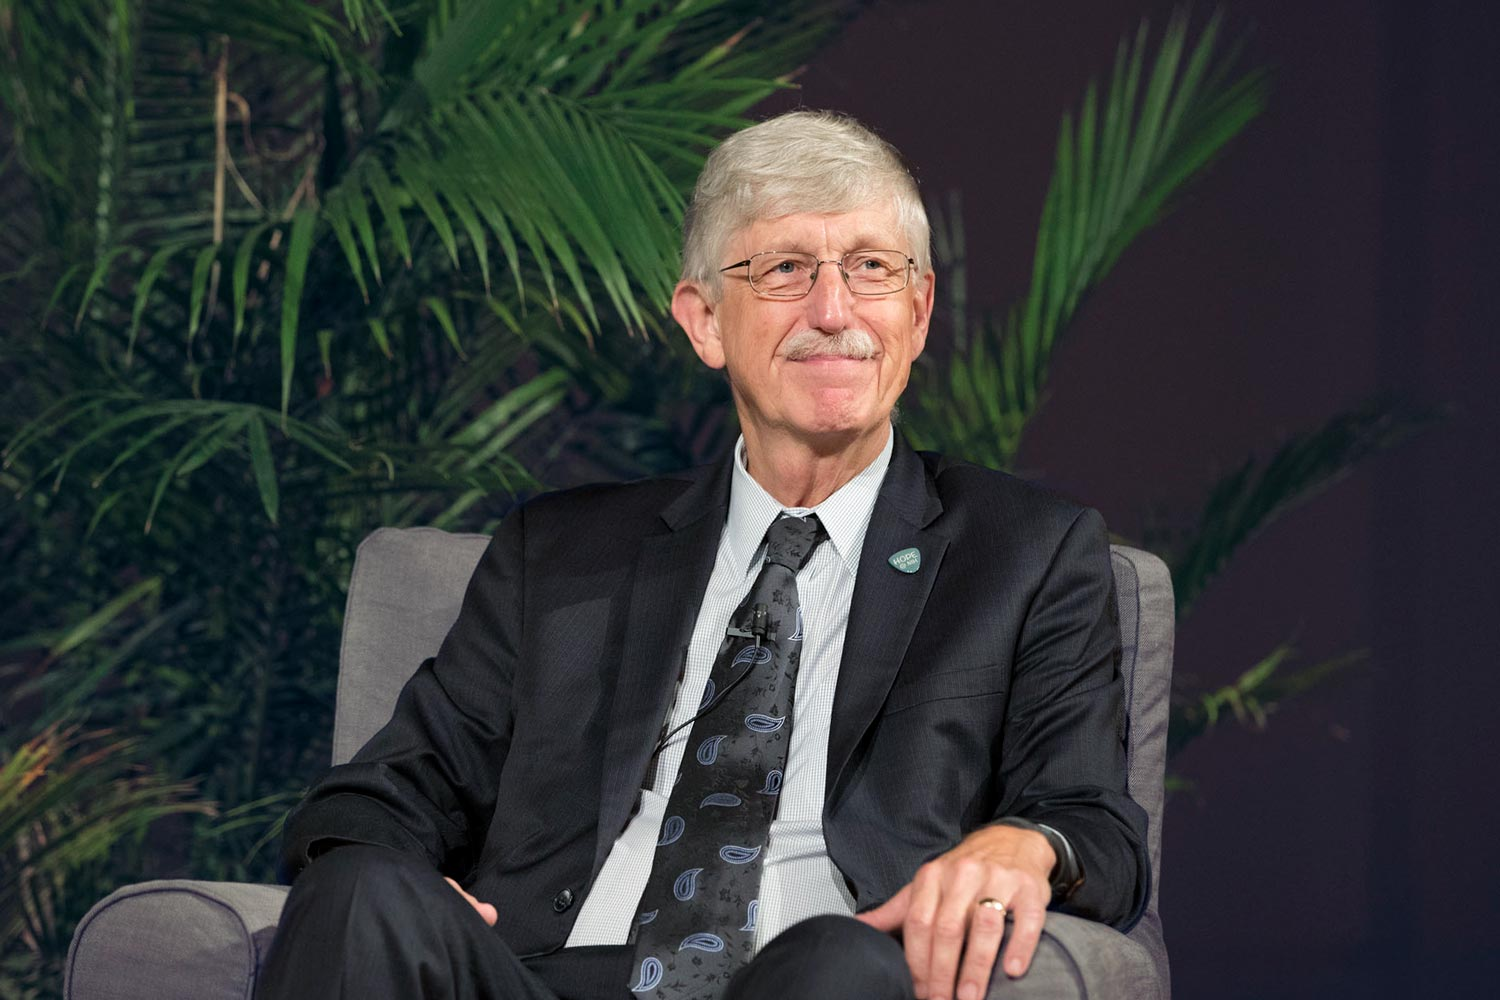 NIH Director Francis Collins, a UVA alumnus, spoke Wednesday to a large audience in UVA's Old Cabell Hall Auditorium.